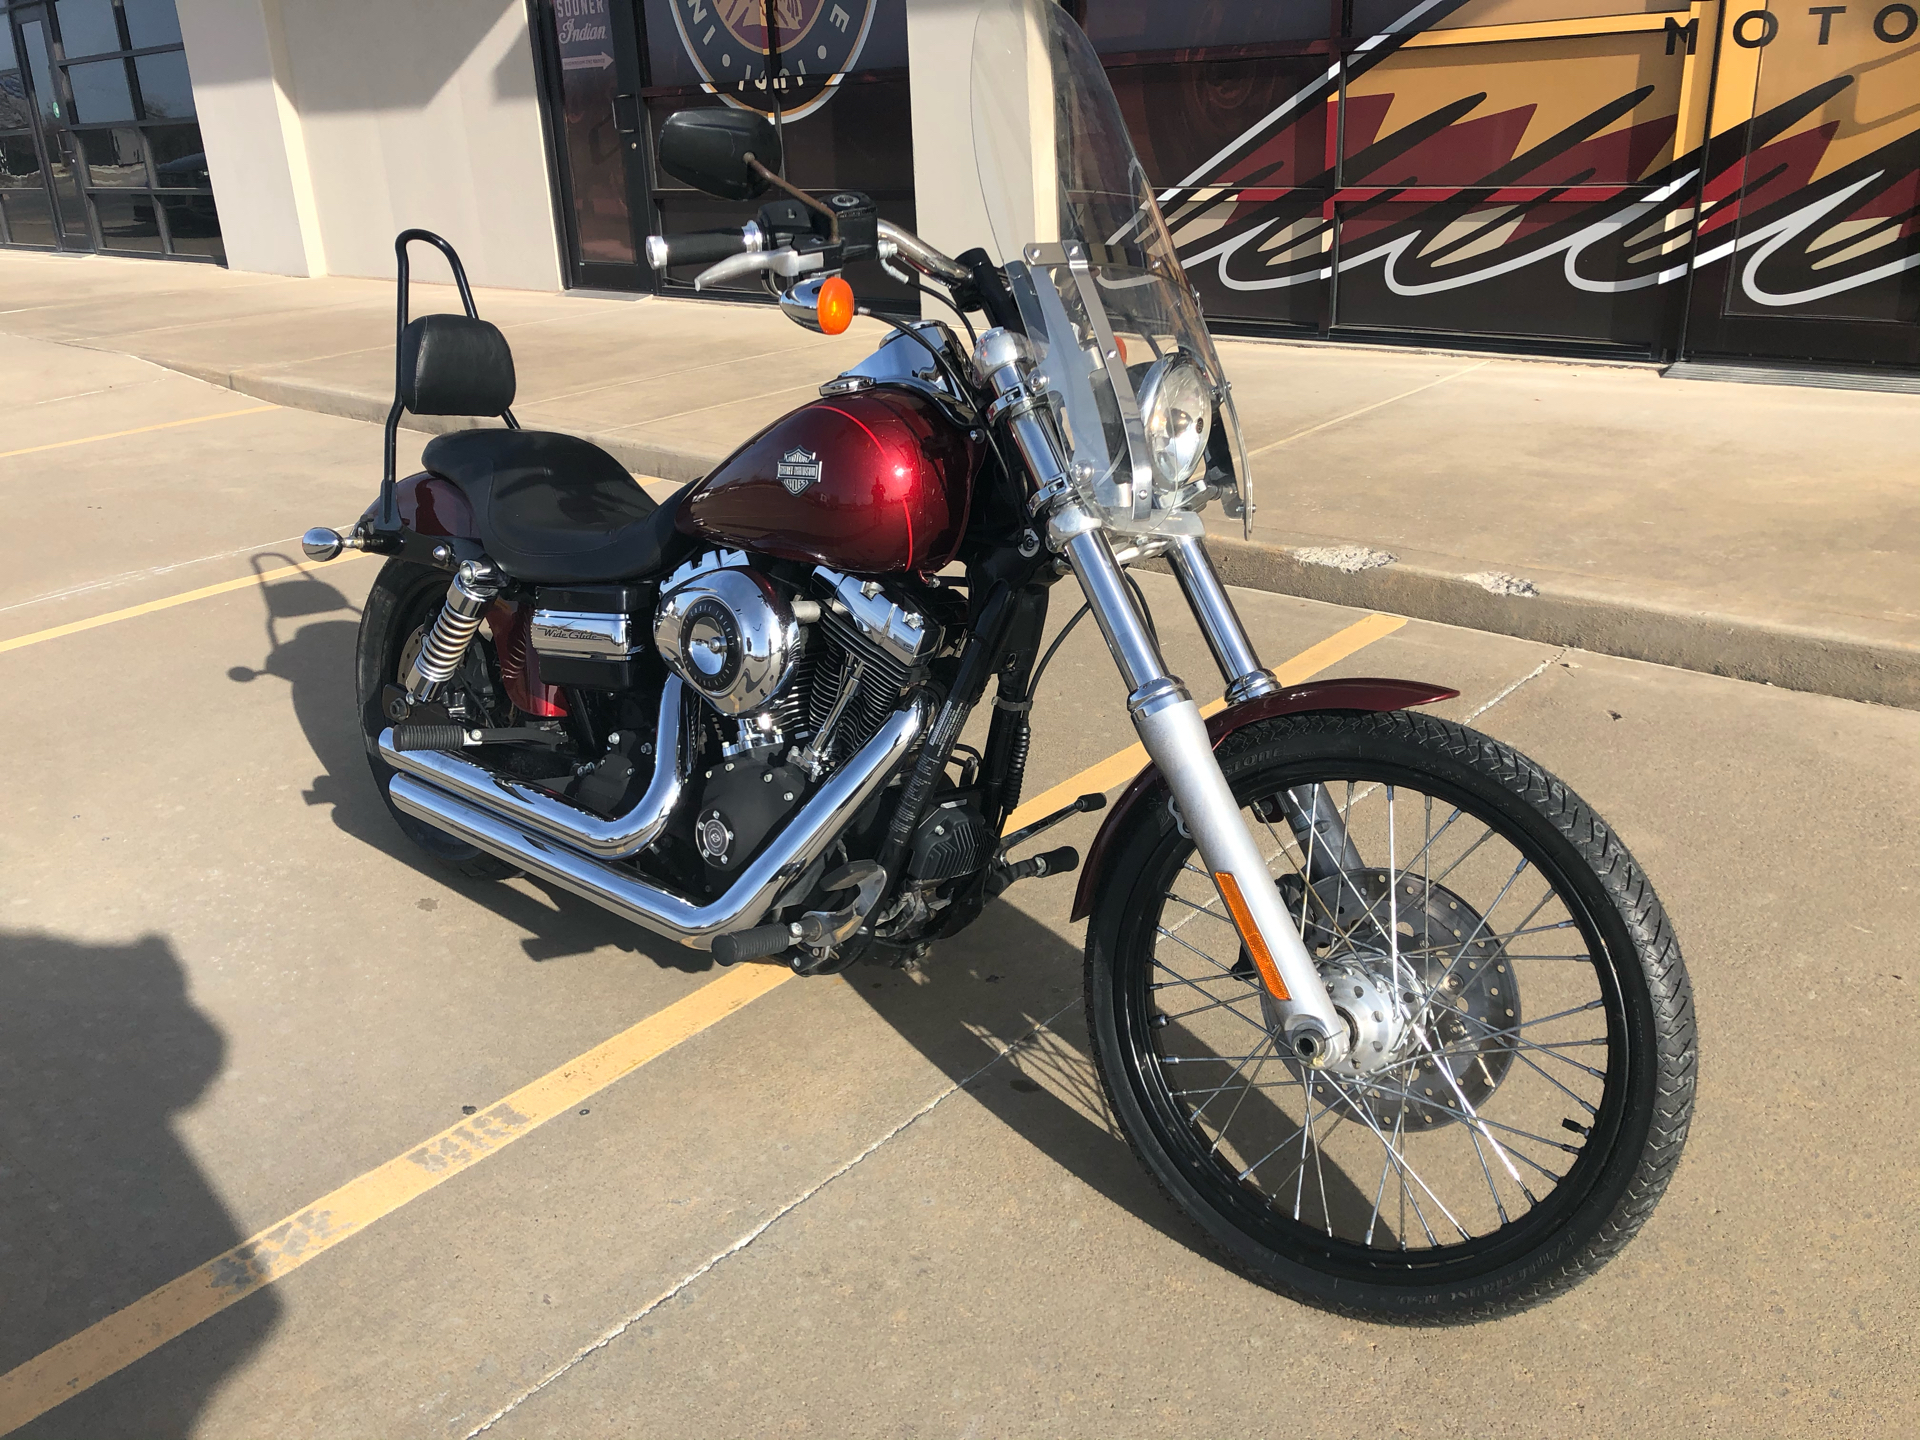 2010 Harley Davidson Dyna Wide Glide Motorcycles Norman Oklahoma 317269